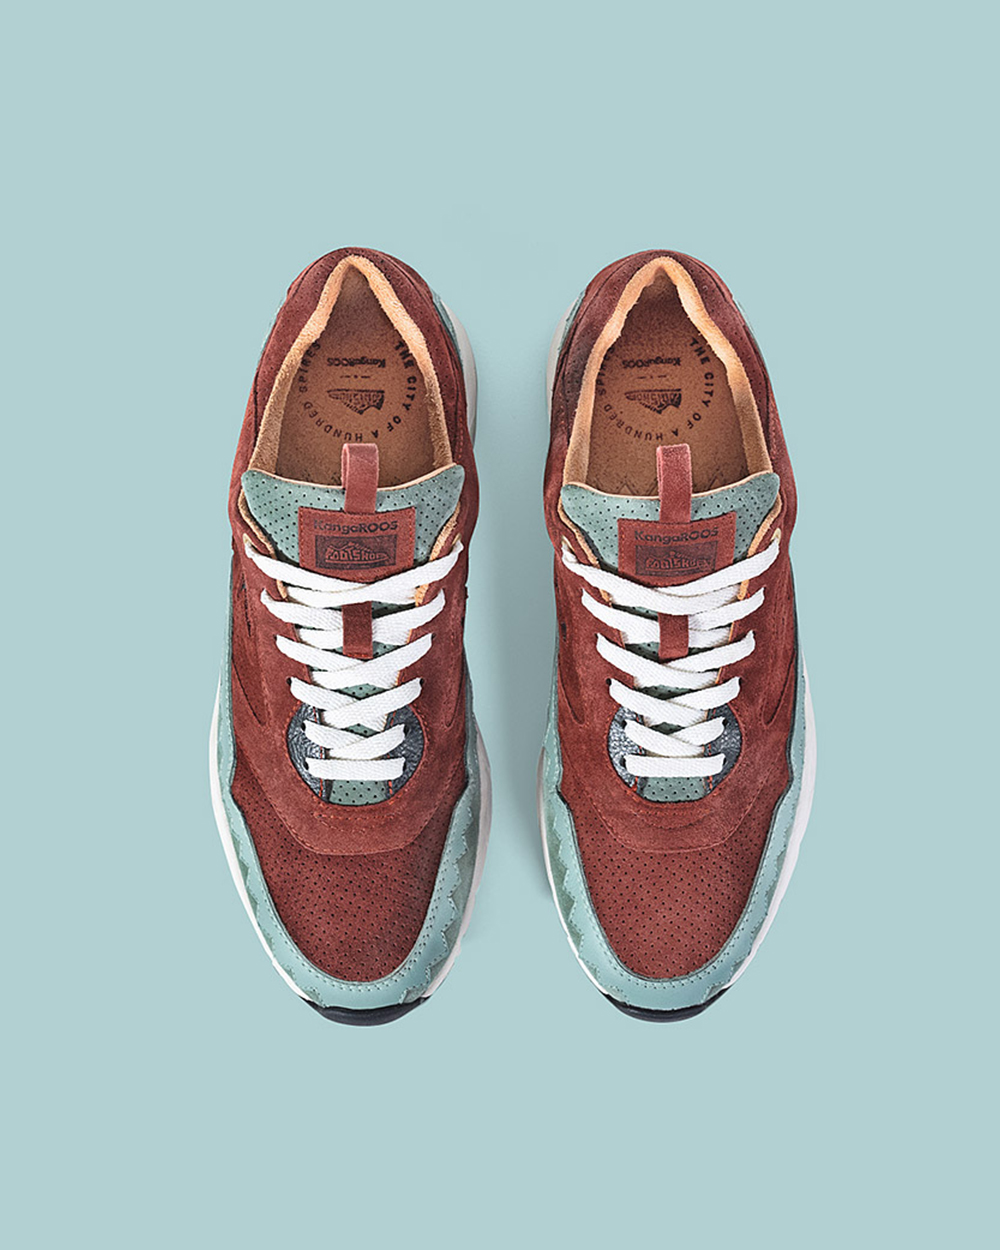 Kangaroos x Footshop Ultimate 3 'The City of a Hundred Spires'